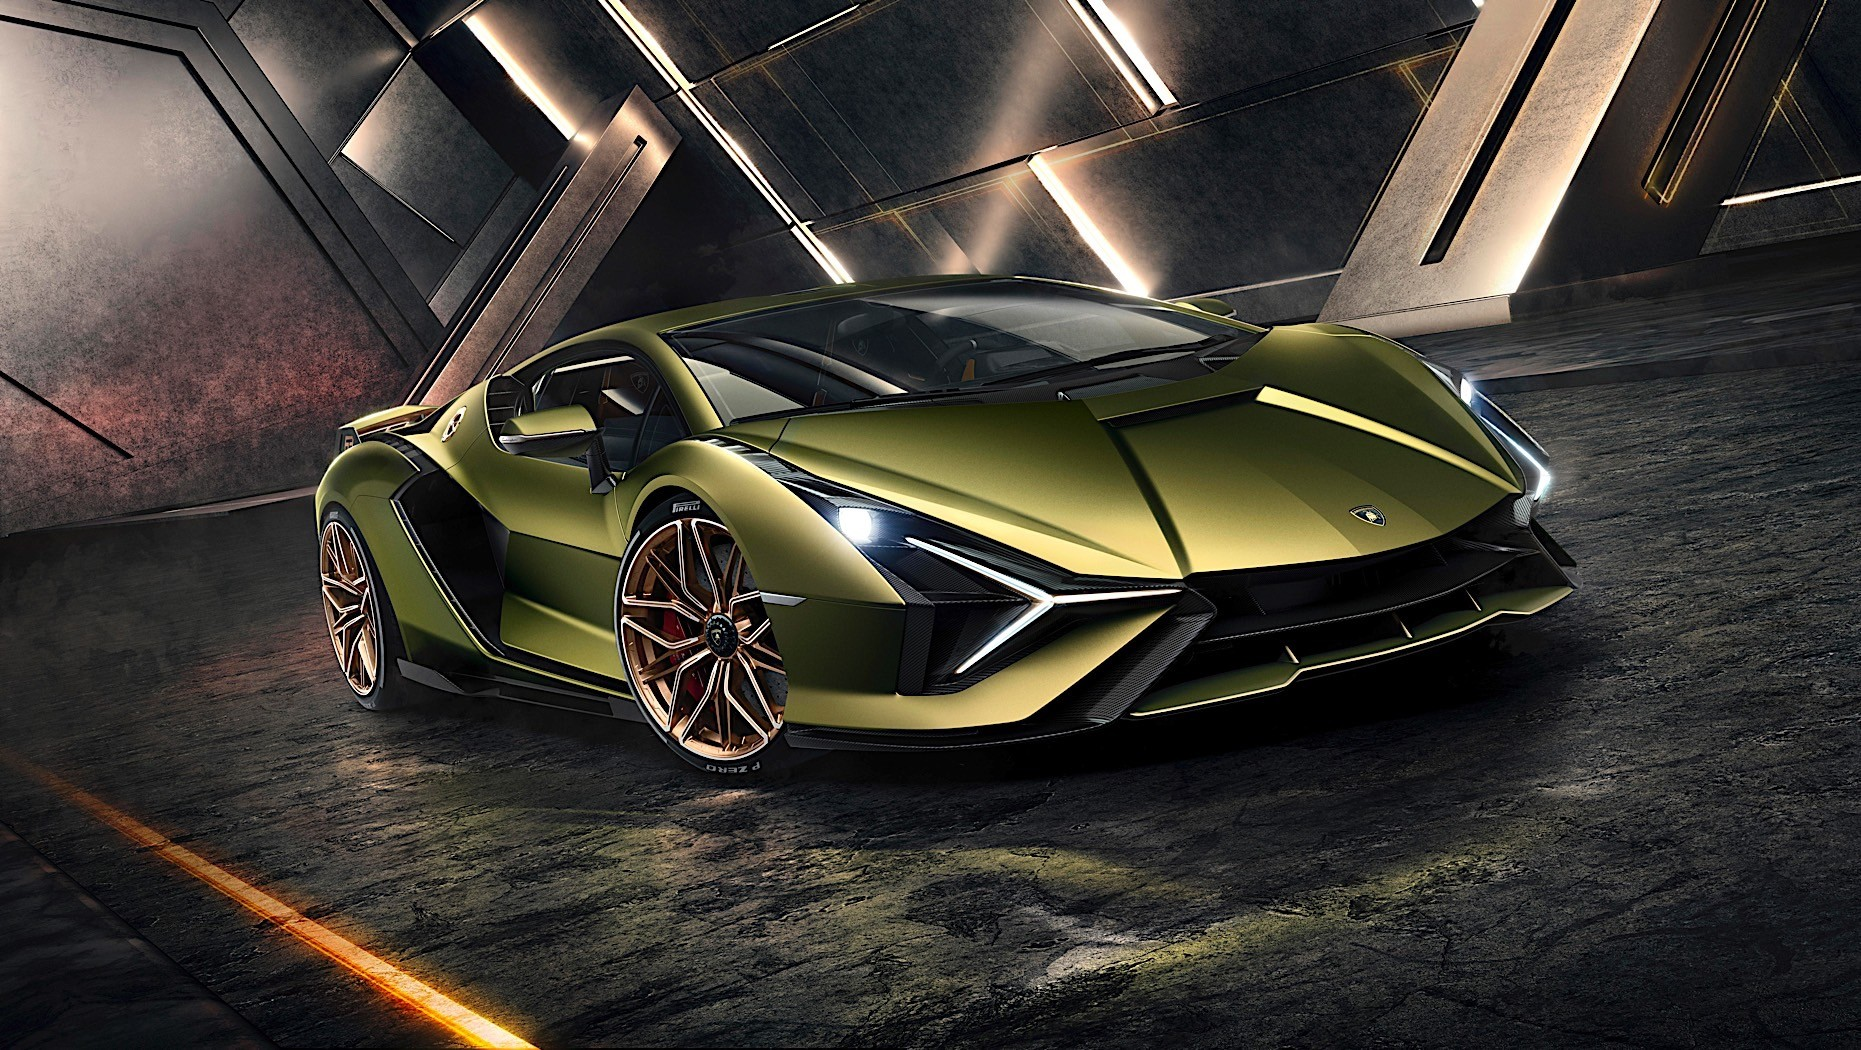 Lamborghini Sian Supercapacitor Is Child's Play, Meaner Tech